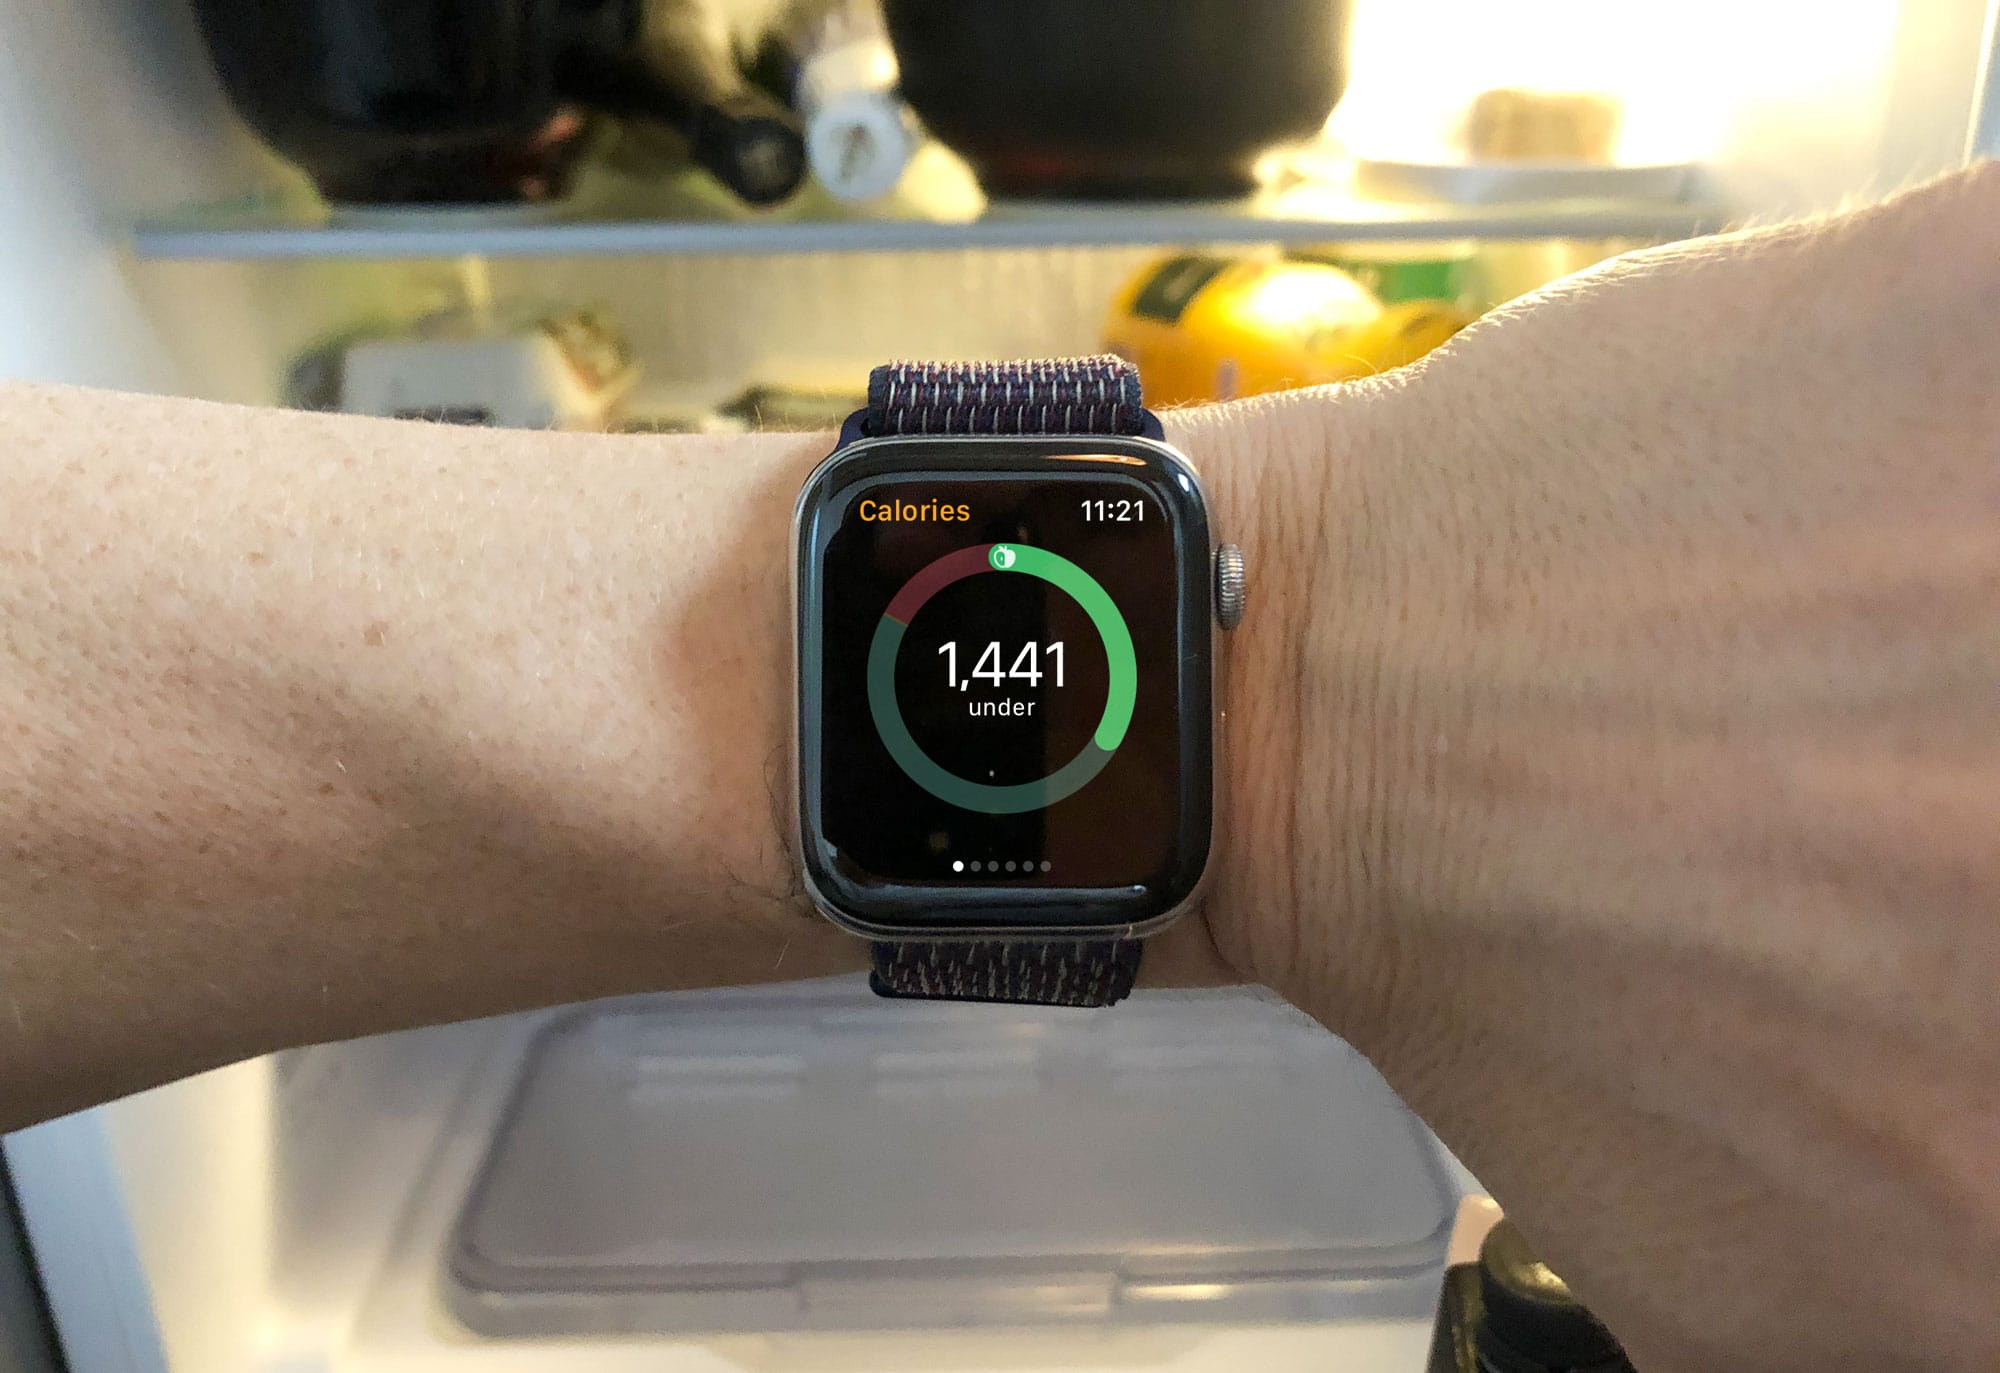 The Lose It watch app tells you how many calories you have left for the day.